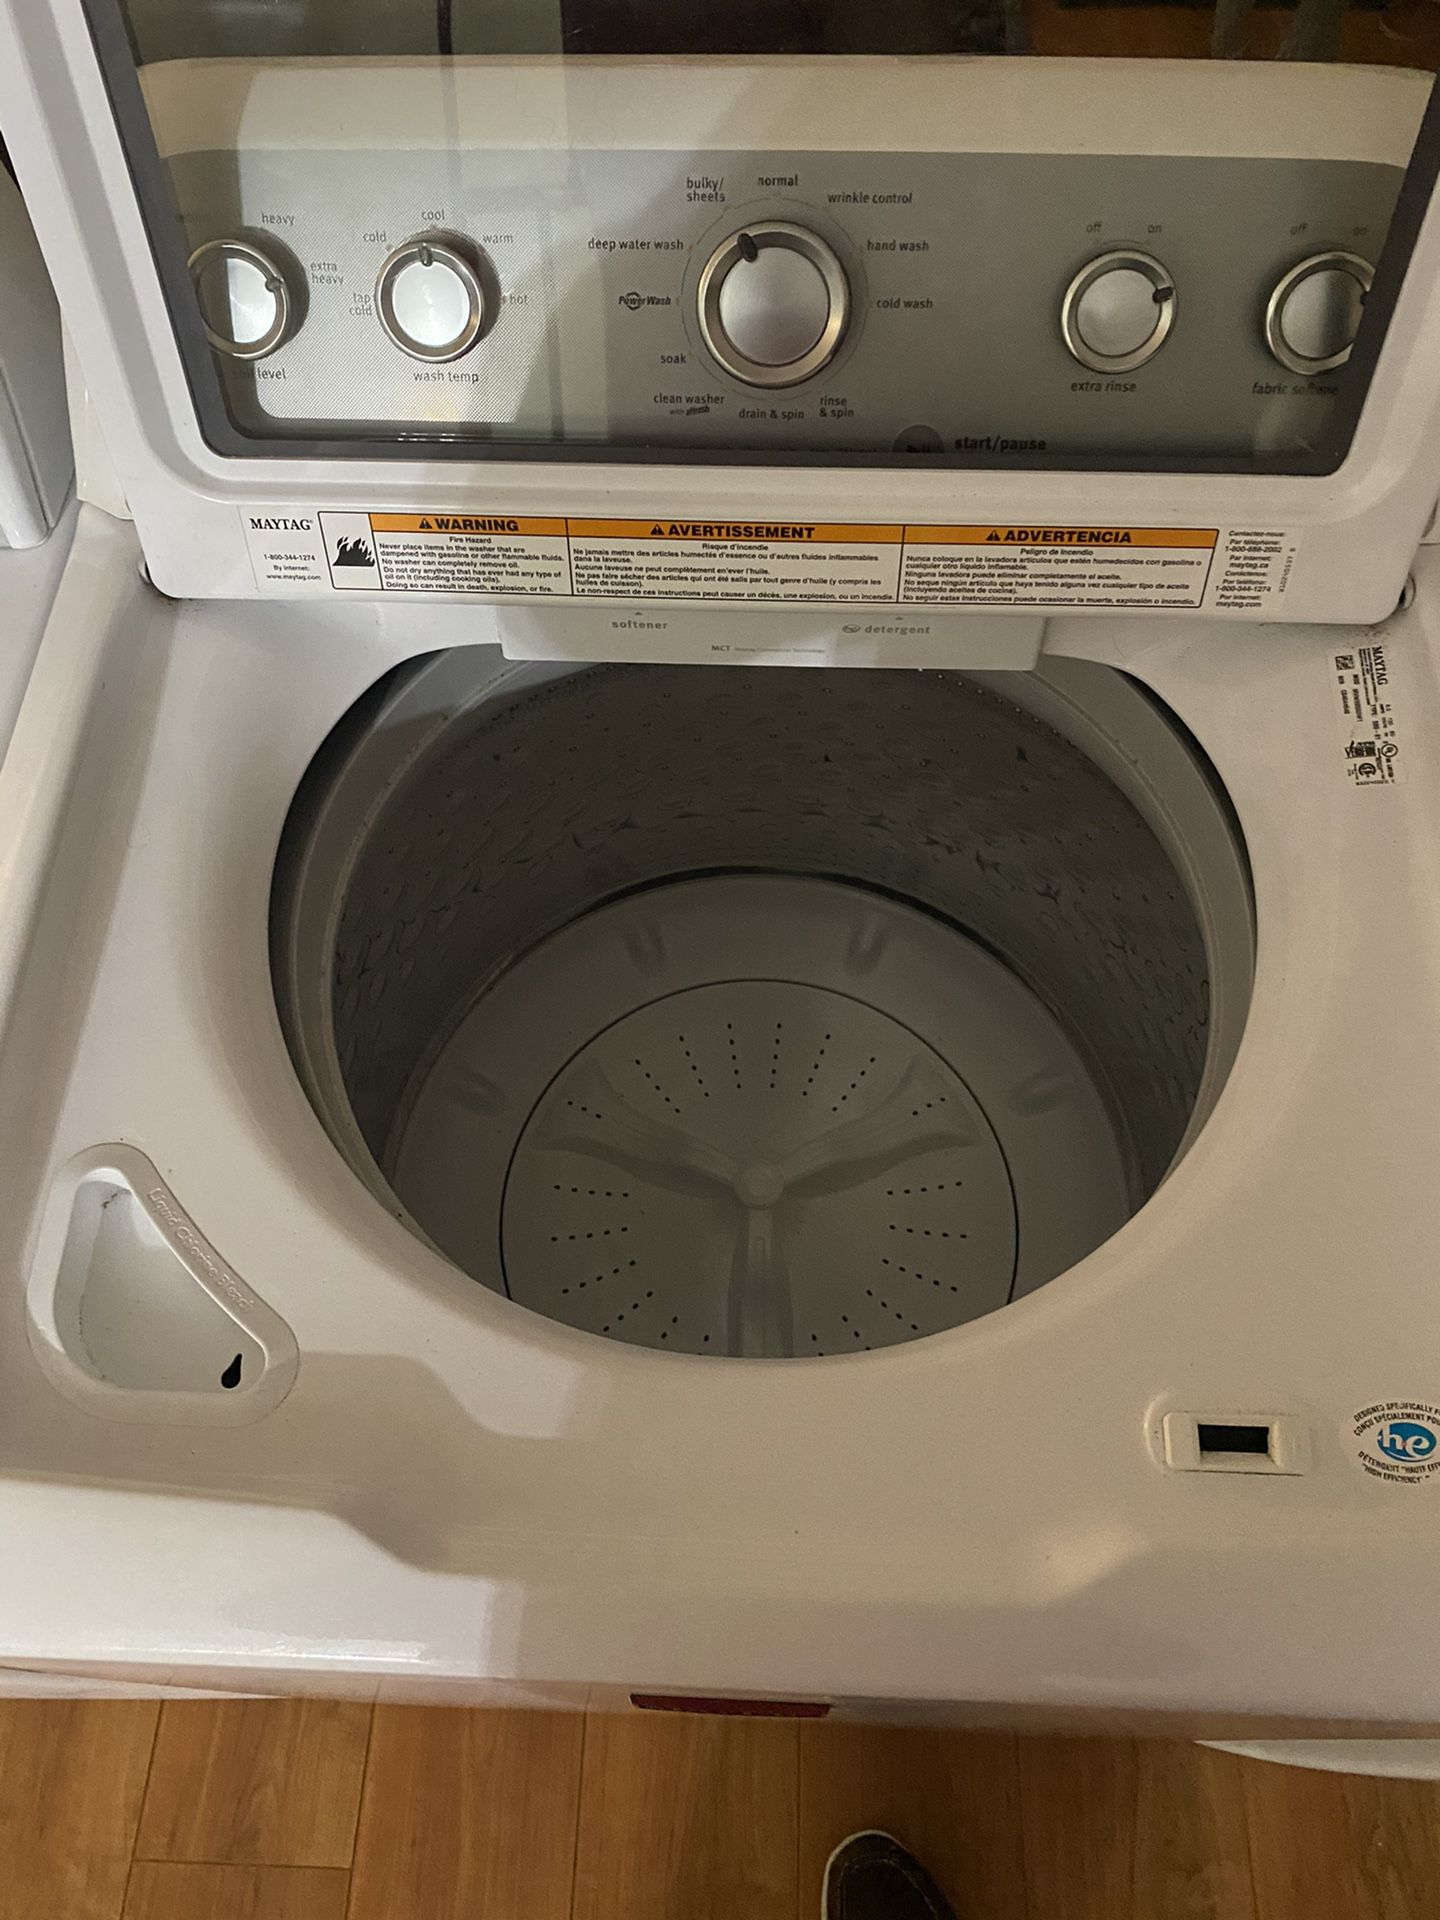 This is a tremendous set of washer and dryer